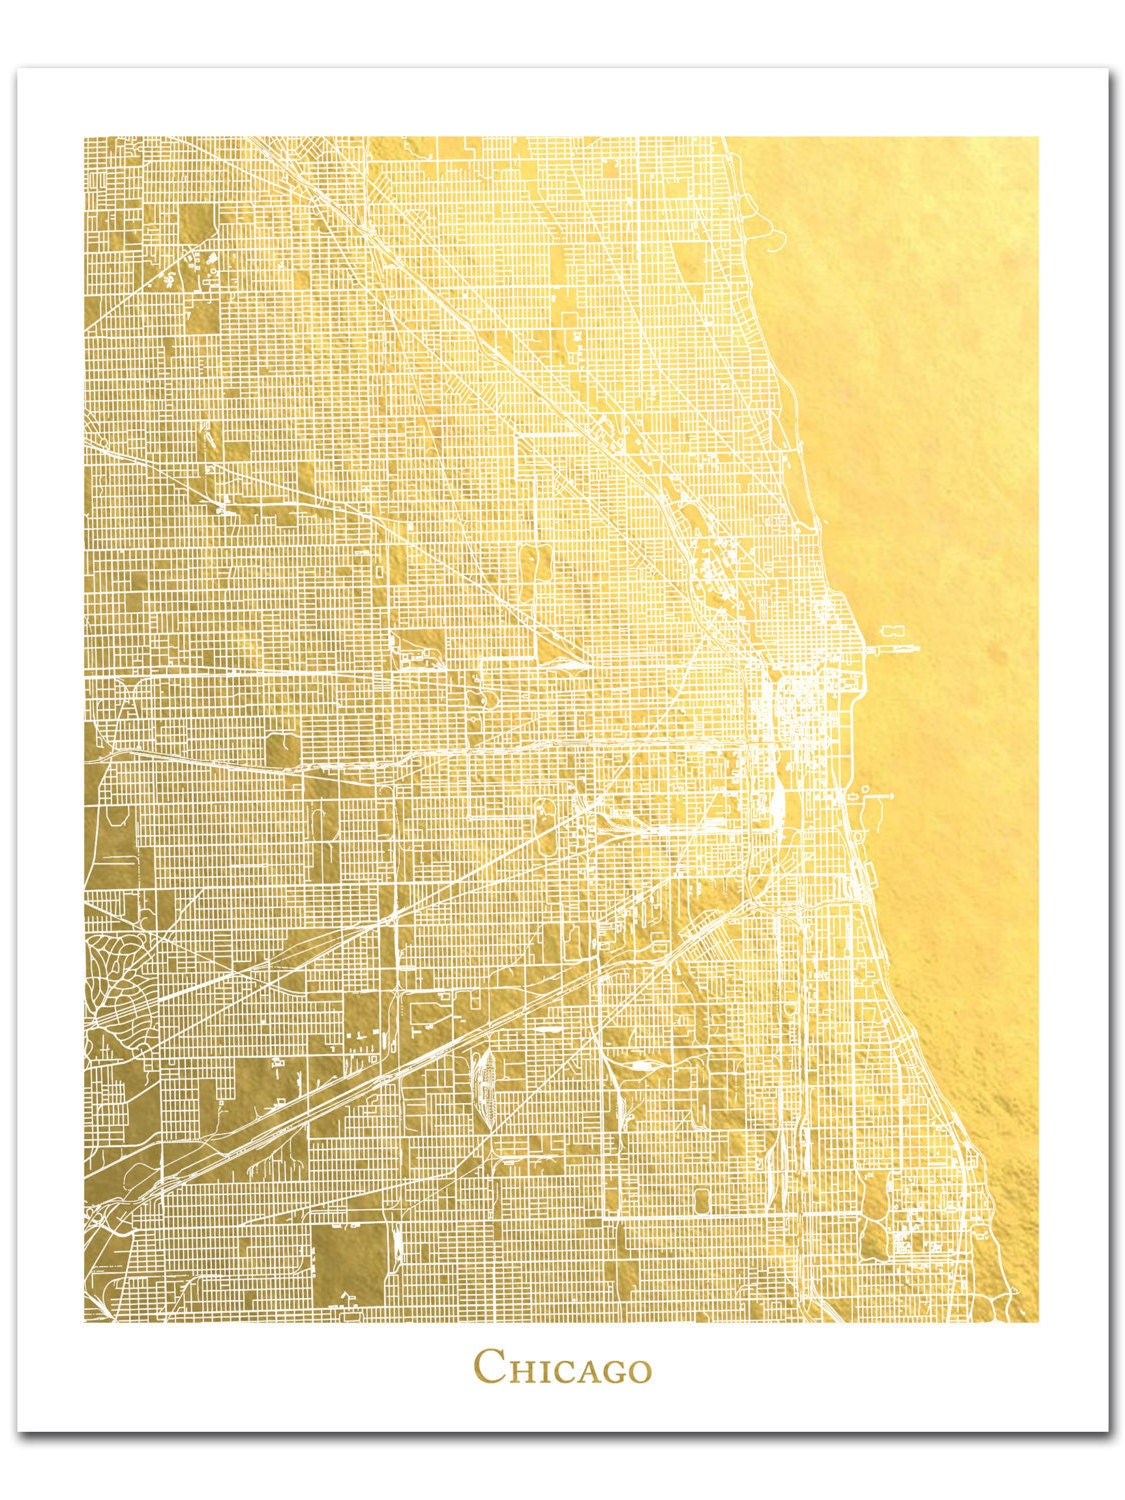 Chicago Map Etsy - Chicago map etsy